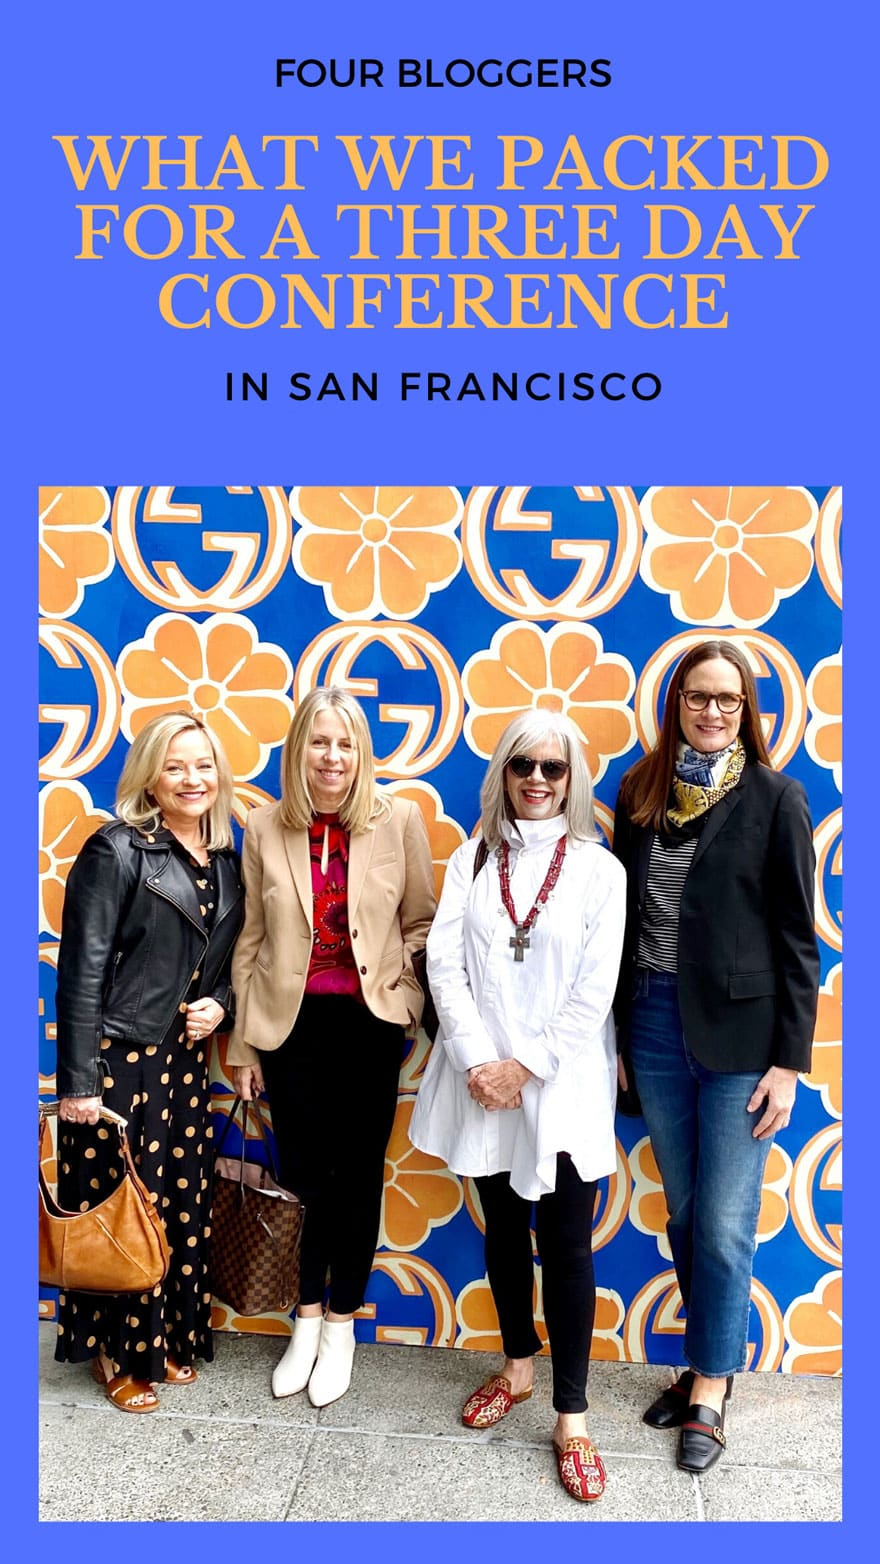 four women standing in front of a colorful pattern with text